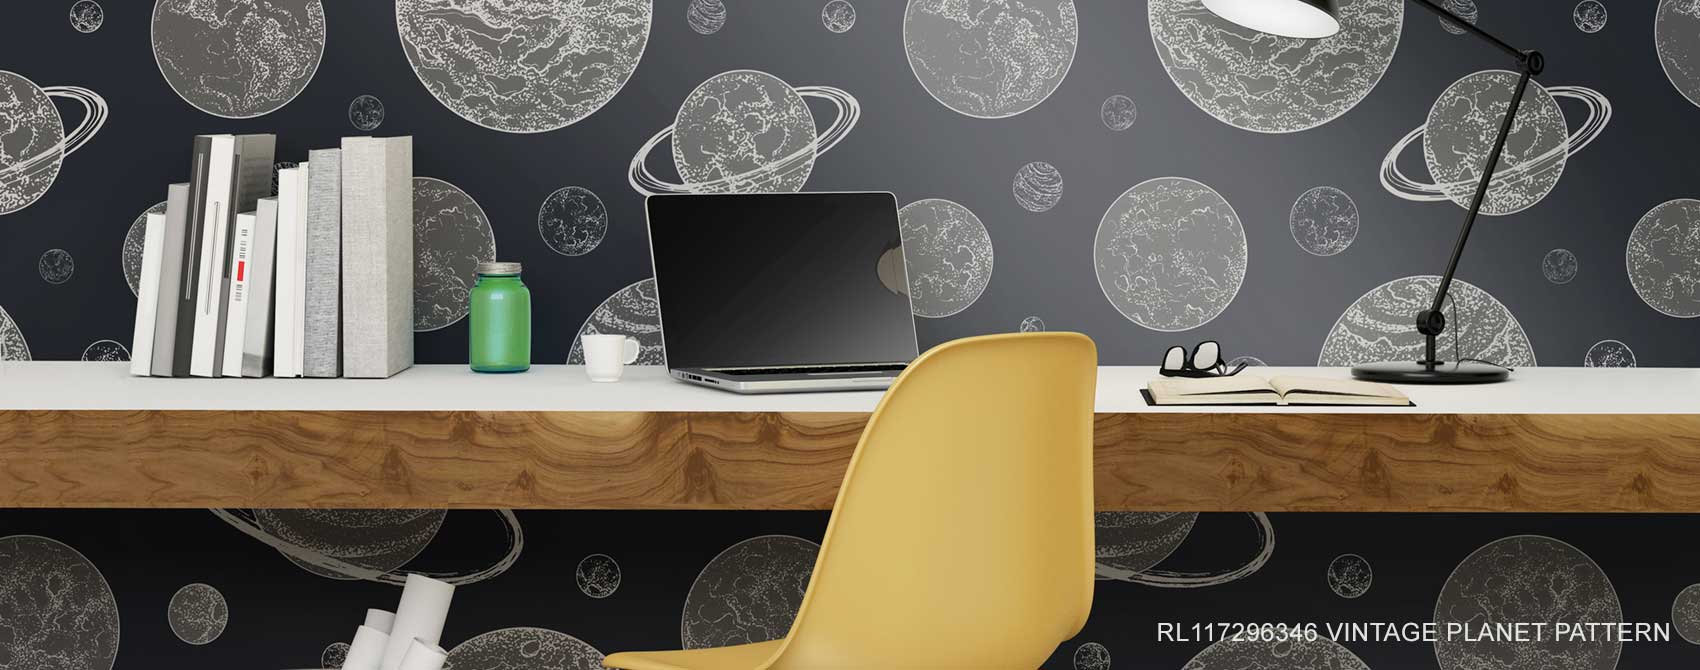 Vintage Planet Pattern Wallpaper Mural